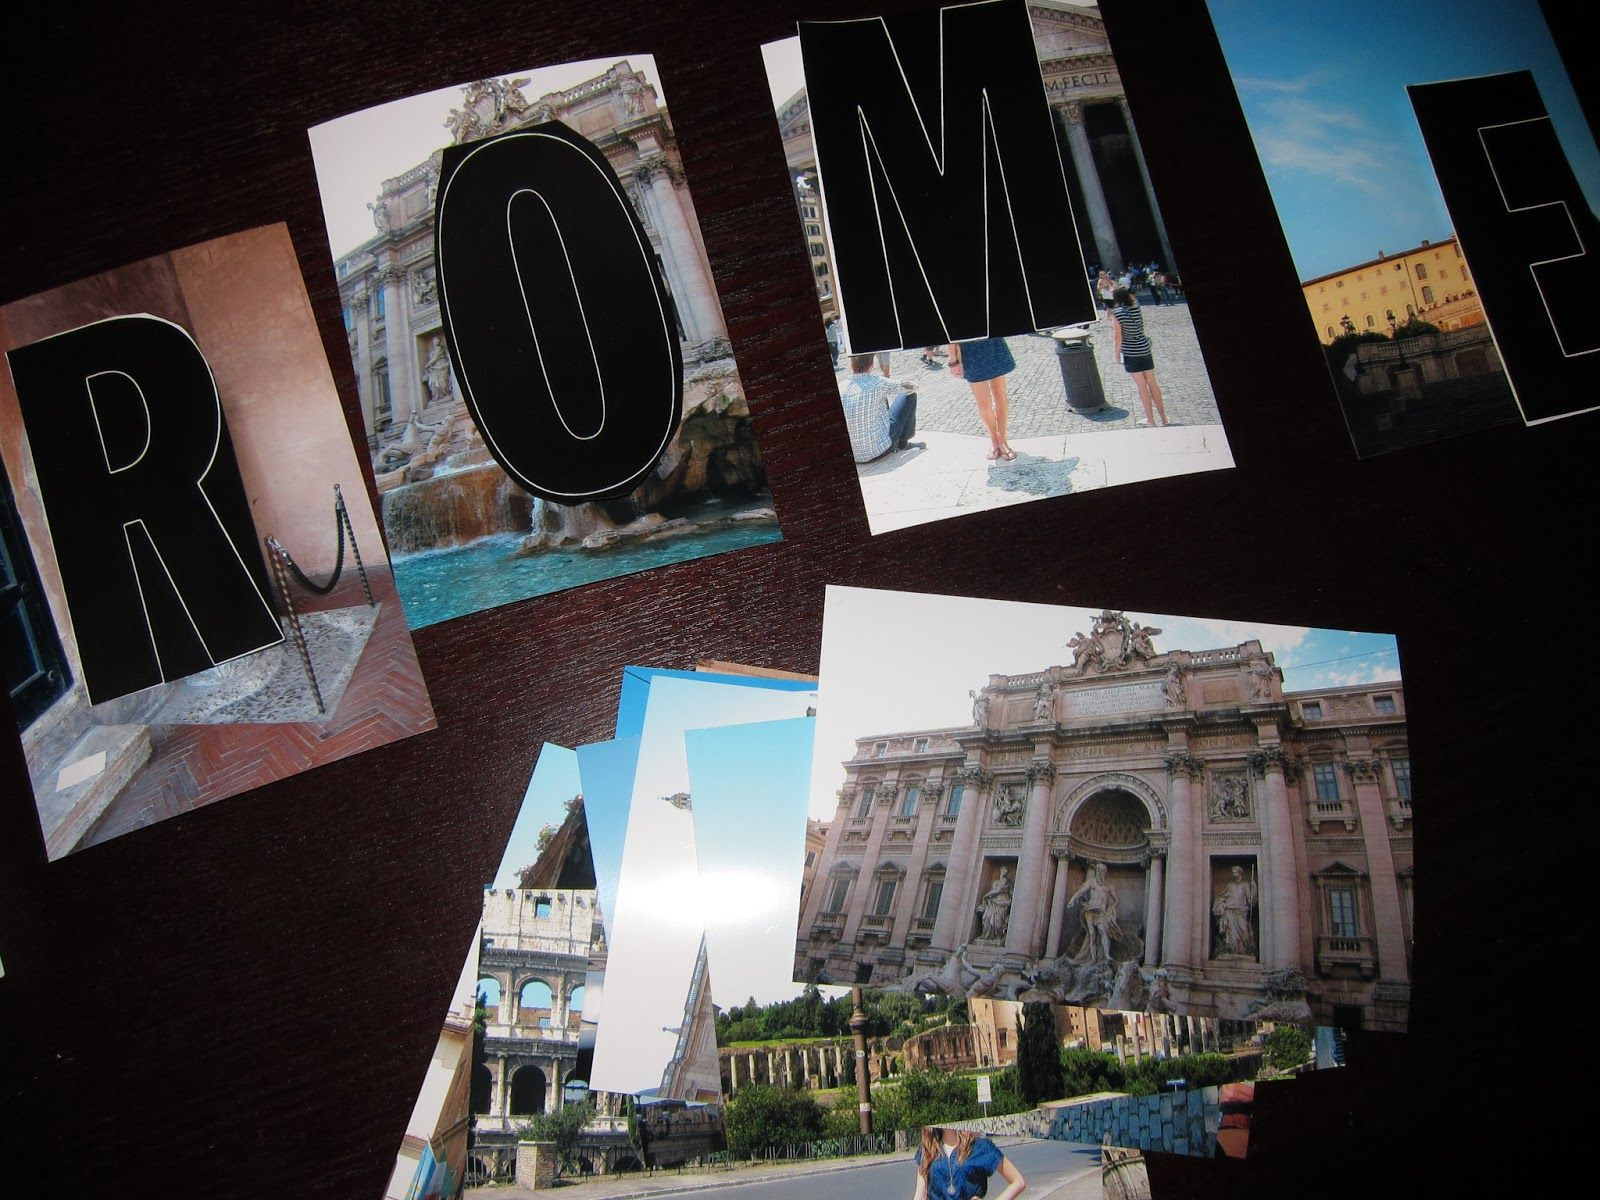 Cut your travel pictures to spell out the name of the city where you traveled. And use them in a travel shadow box